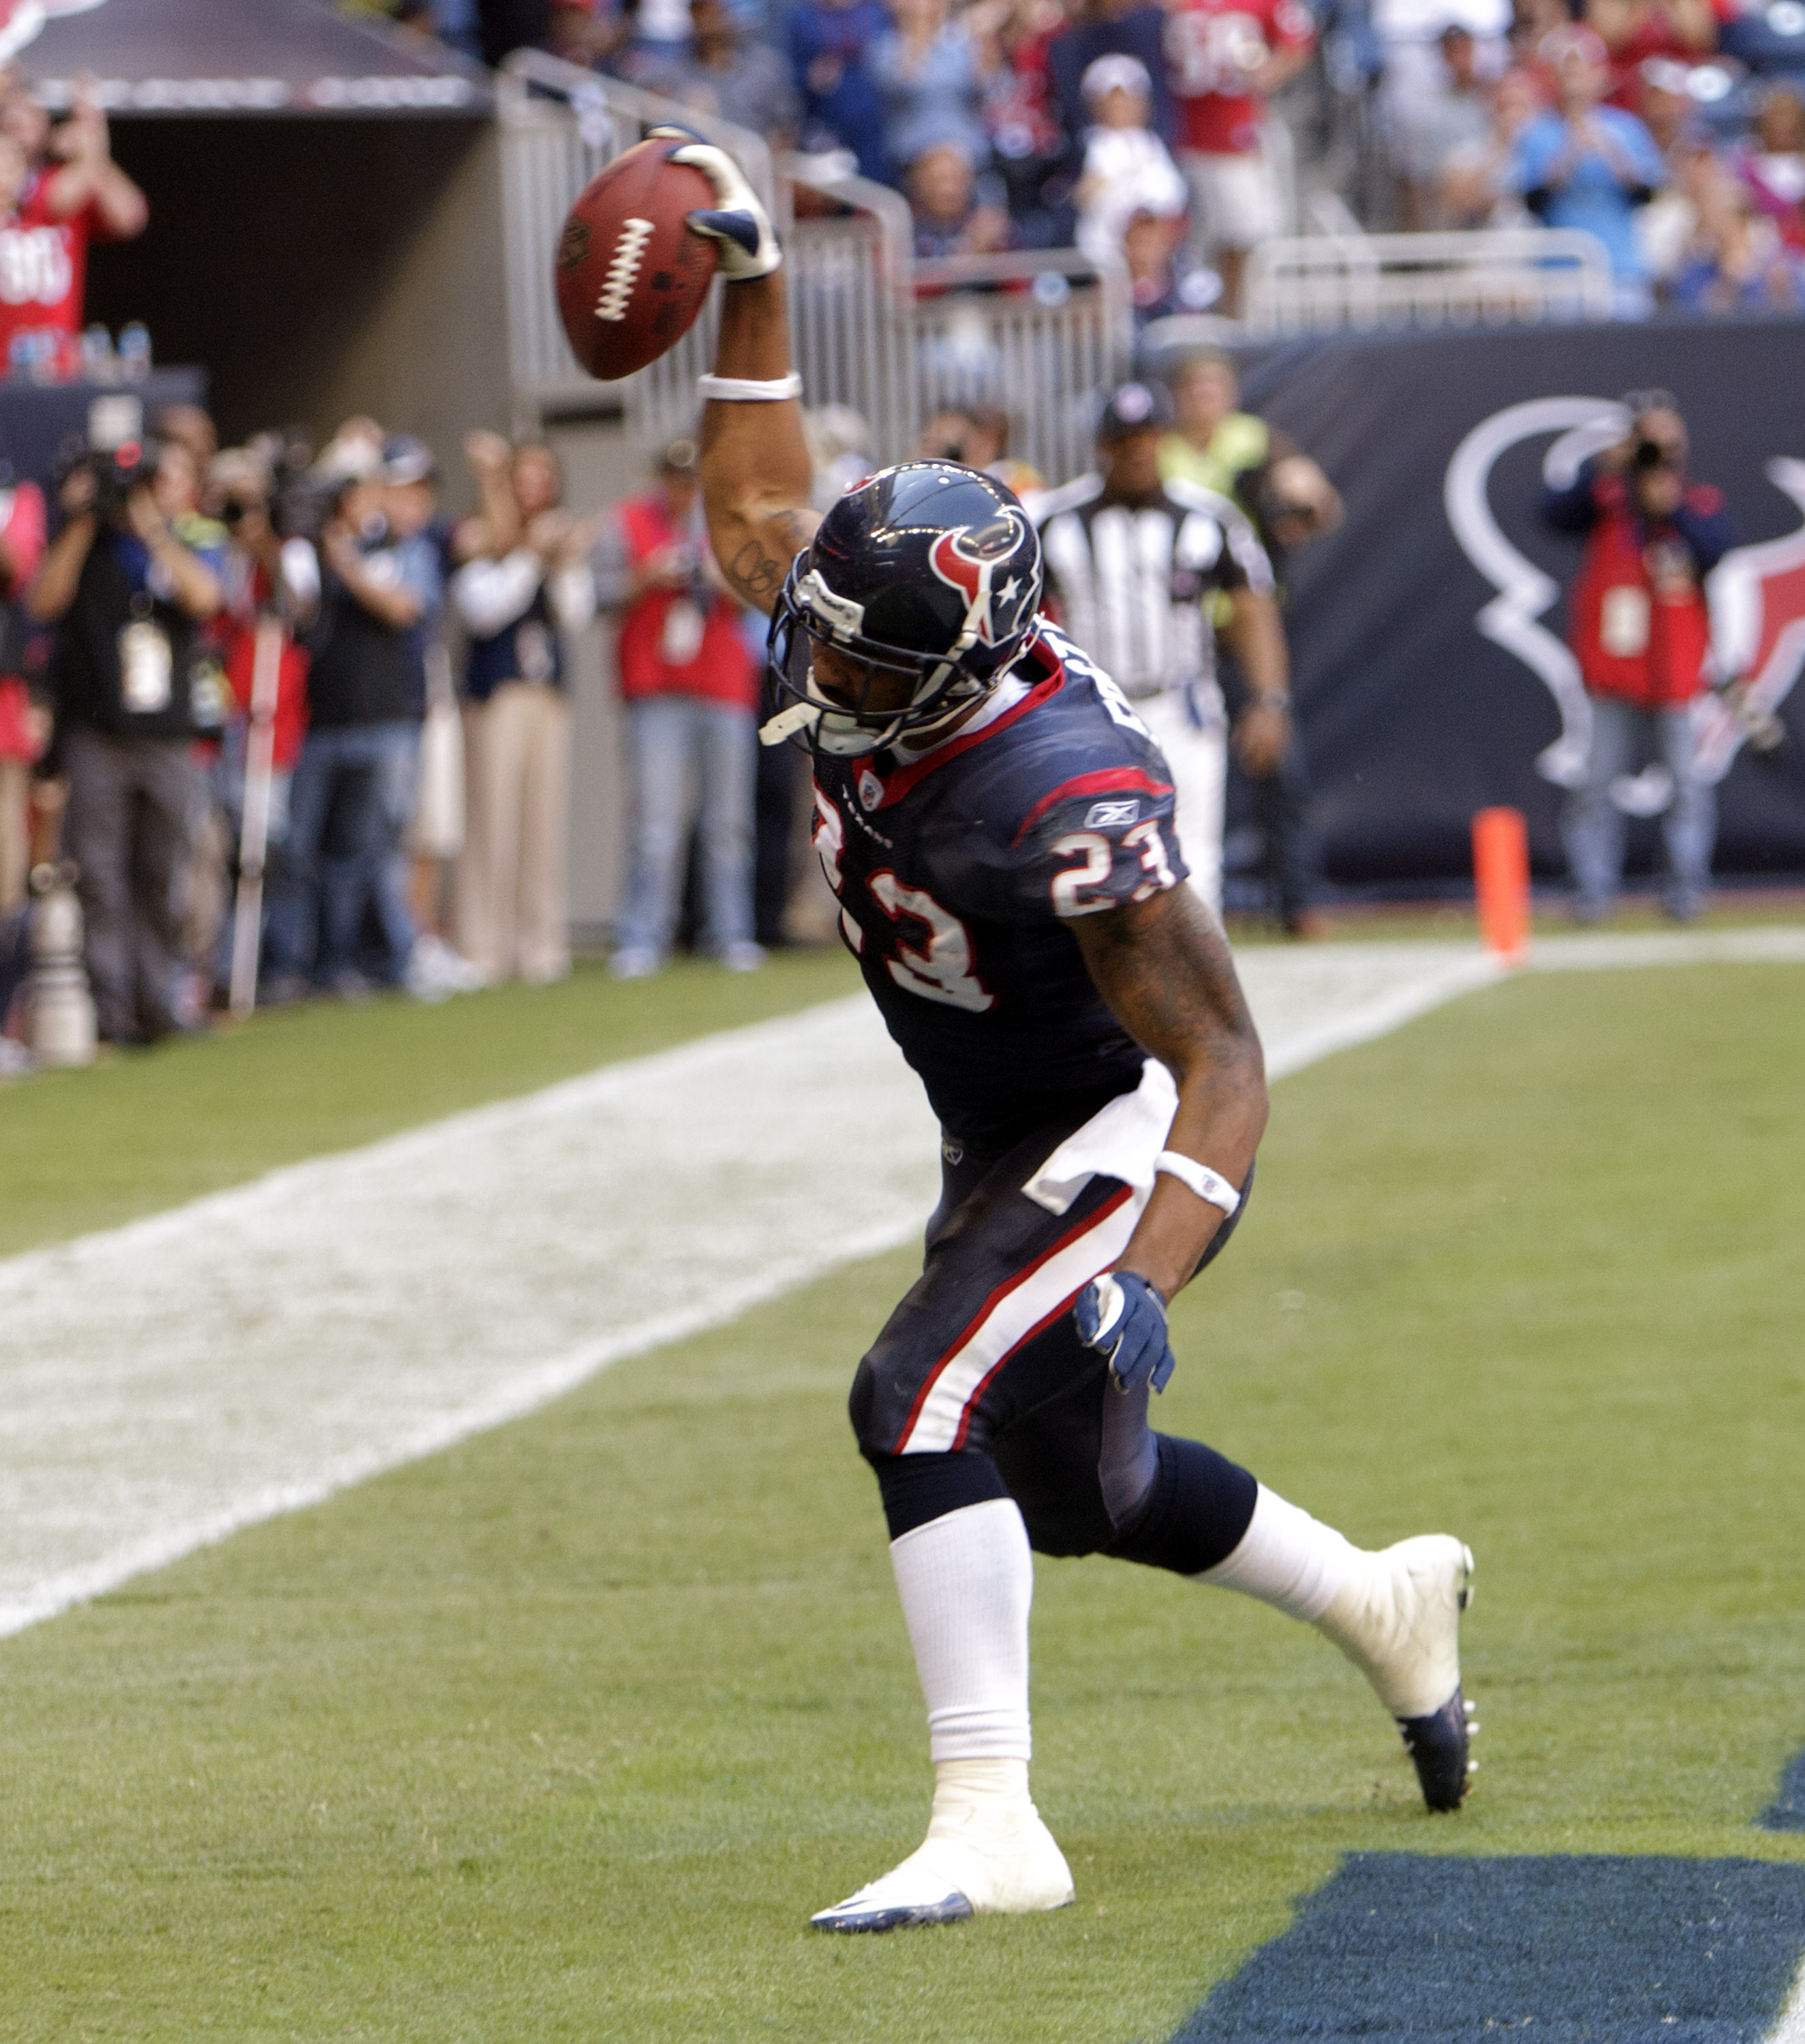 HOUSTON - NOVEMBER 07:  Running back Arian Foster #23 scores against the San Diego Chargers at Reliant Stadium on November 7, 2010 in Houston, Texas.  (Photo by Bob Levey/Getty Images)